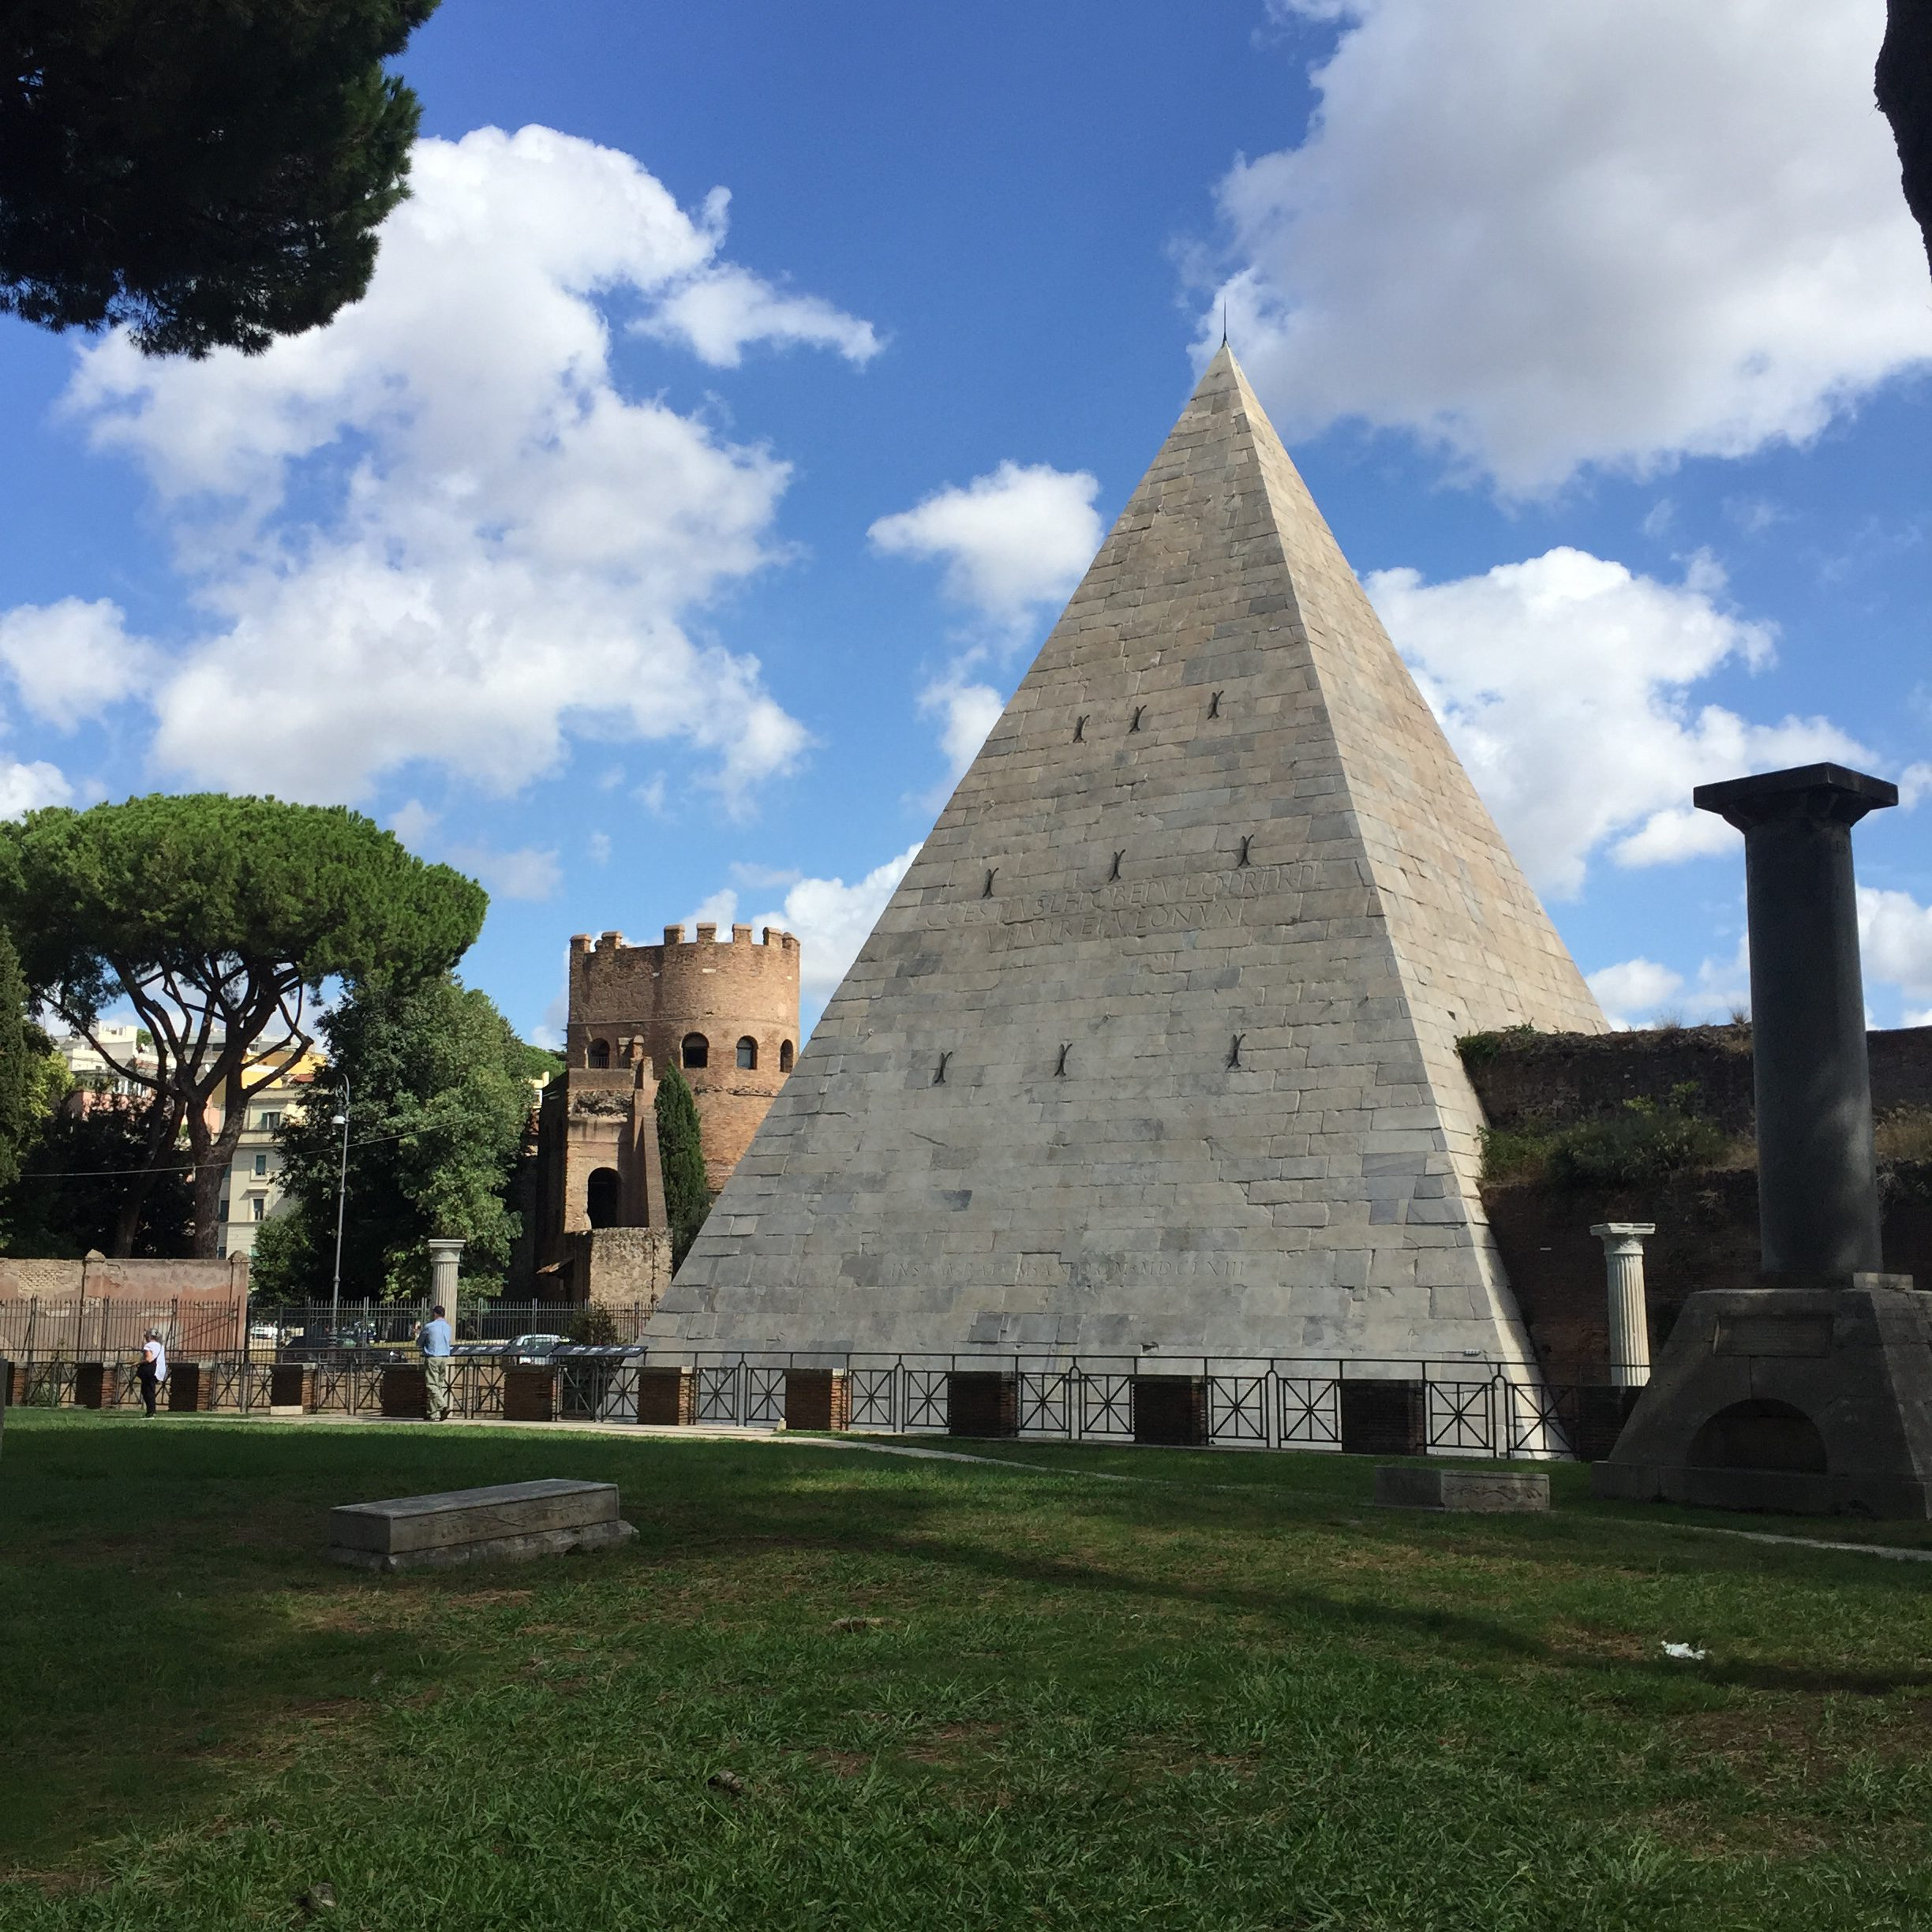 Pyramid of cestius - Here's a crazy fact I was surprised to discover when planning my trip to Italy: there is an ancient pyramid in Rome known as the Pyramid of Cestius. Modeled after the Egyptian pyramids and standing 124 feet tall, the Pyramid of Cestius was built sometime between 18 and 12 B.C as the tomb for Gaius Cestius, a Roman senator and general. As someone who has not yet made it to Egypt, it was pretty incredible to see. I imagine, even for someone who has been to Egypt, the juxtaposition of a pyramid in the middle of Rome would still be worth checking out. Opportunities to tour the inside of the pyramid are limited to the 2nd and 4th Saturday of the month, but you can also check out the outside 24 hours a day, as it is located right on the side of the road.